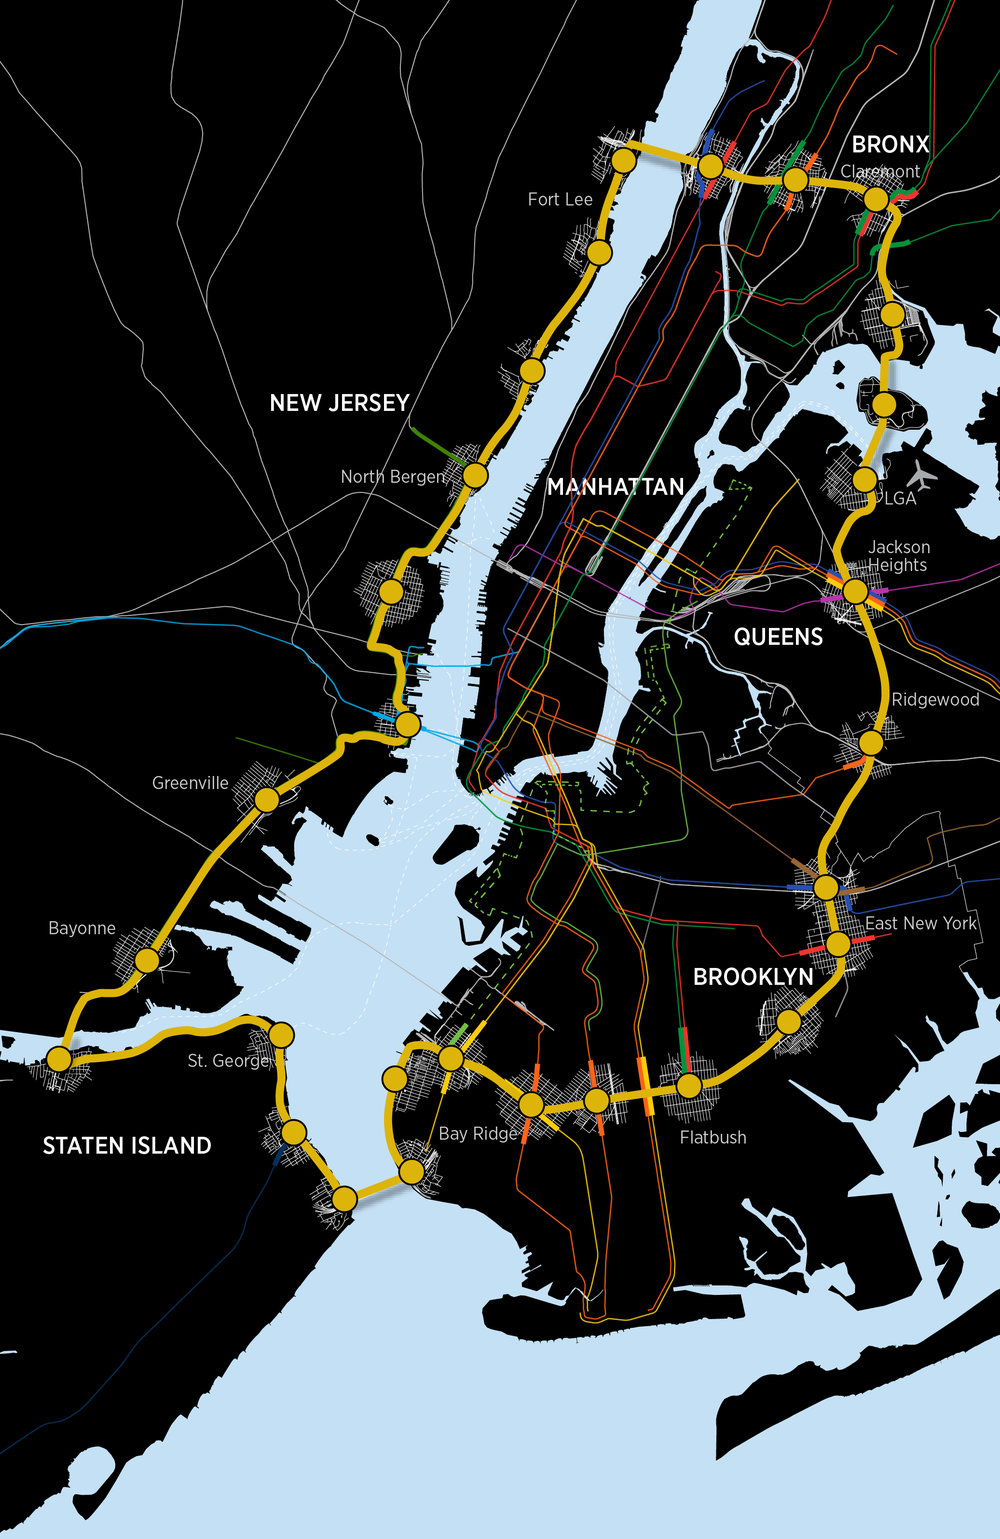 An elevated mass transit line connecting all 5 boroughs and New Jersey. The line would reach the marginalized and underserved communities of South Brooklyn and the south Bronx